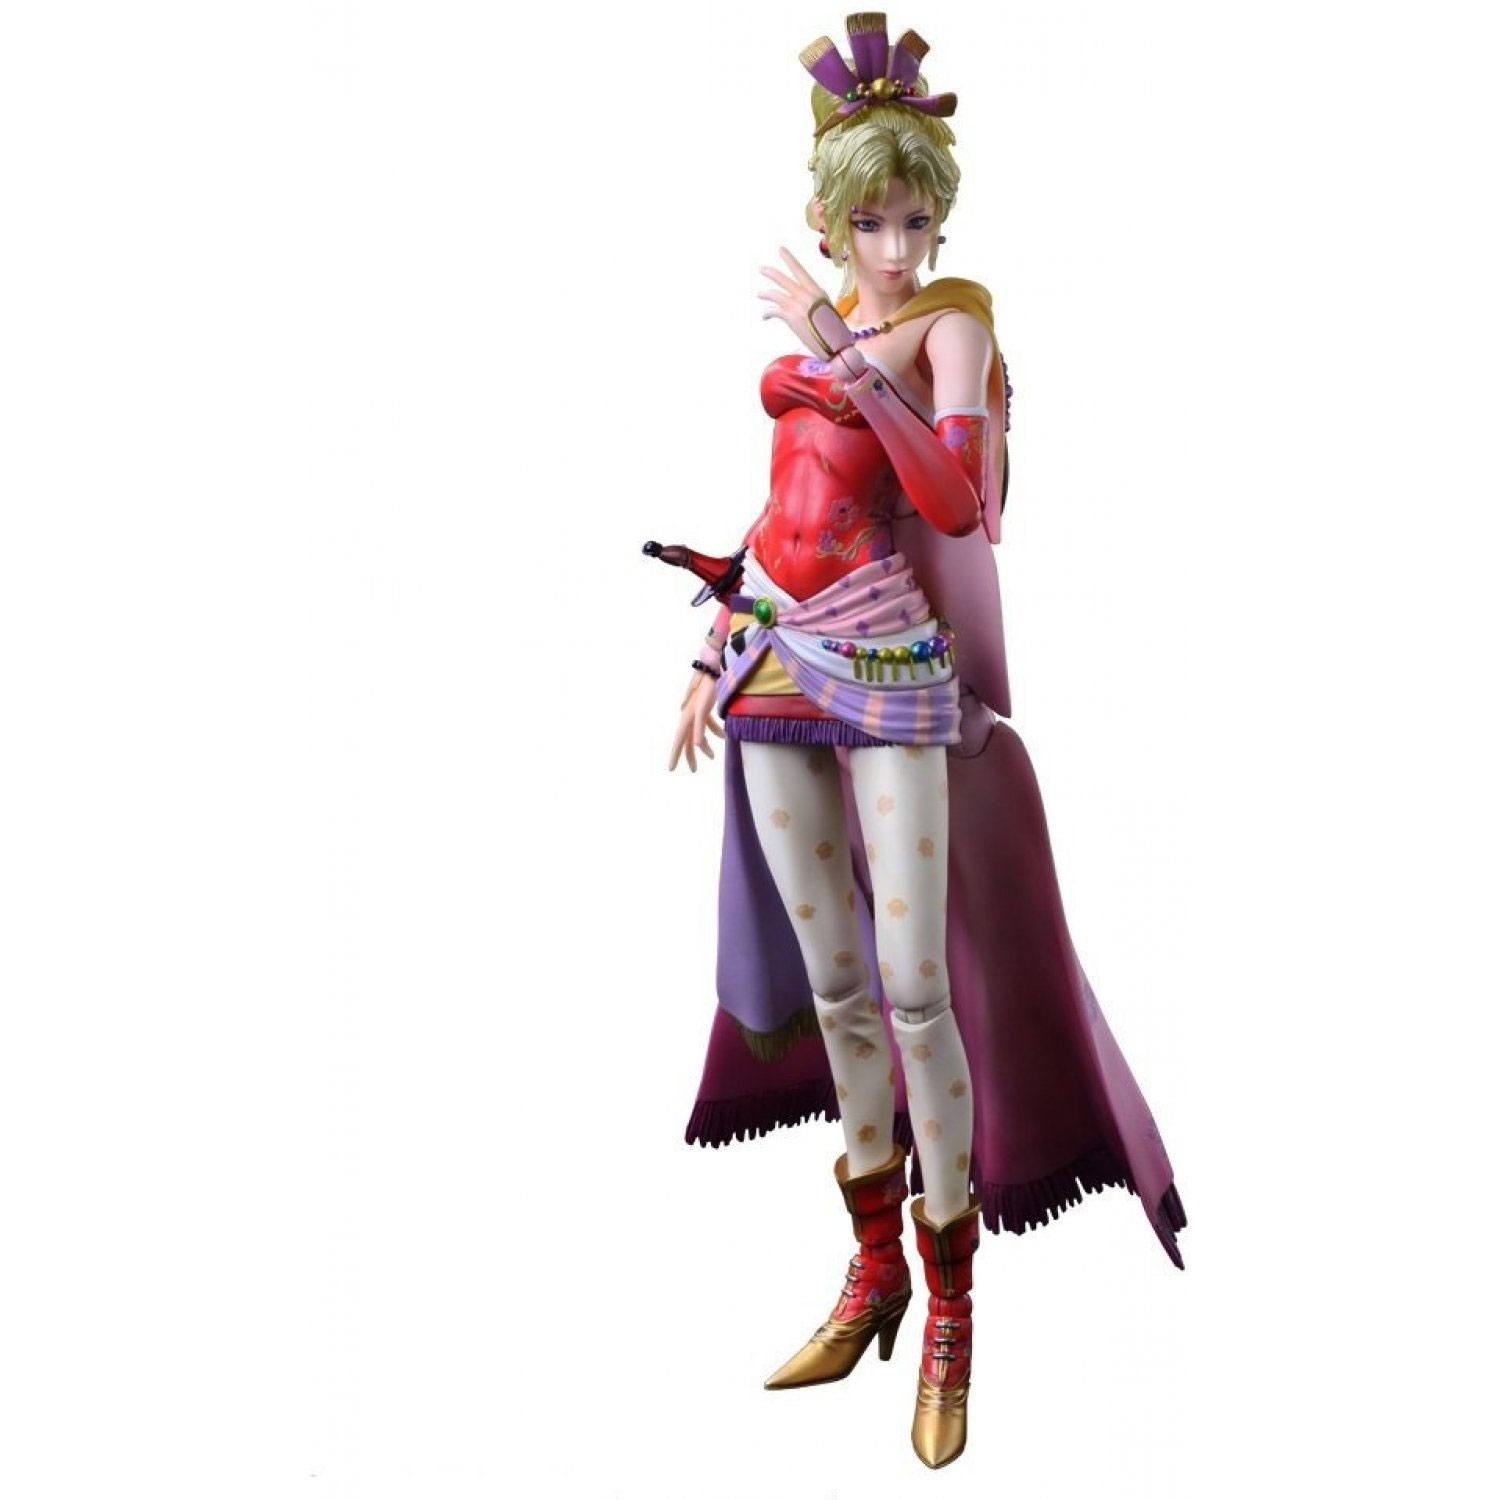 Dissidia Final Fantasy Play Arts Kai Action Figure Terra Branford 25 cm